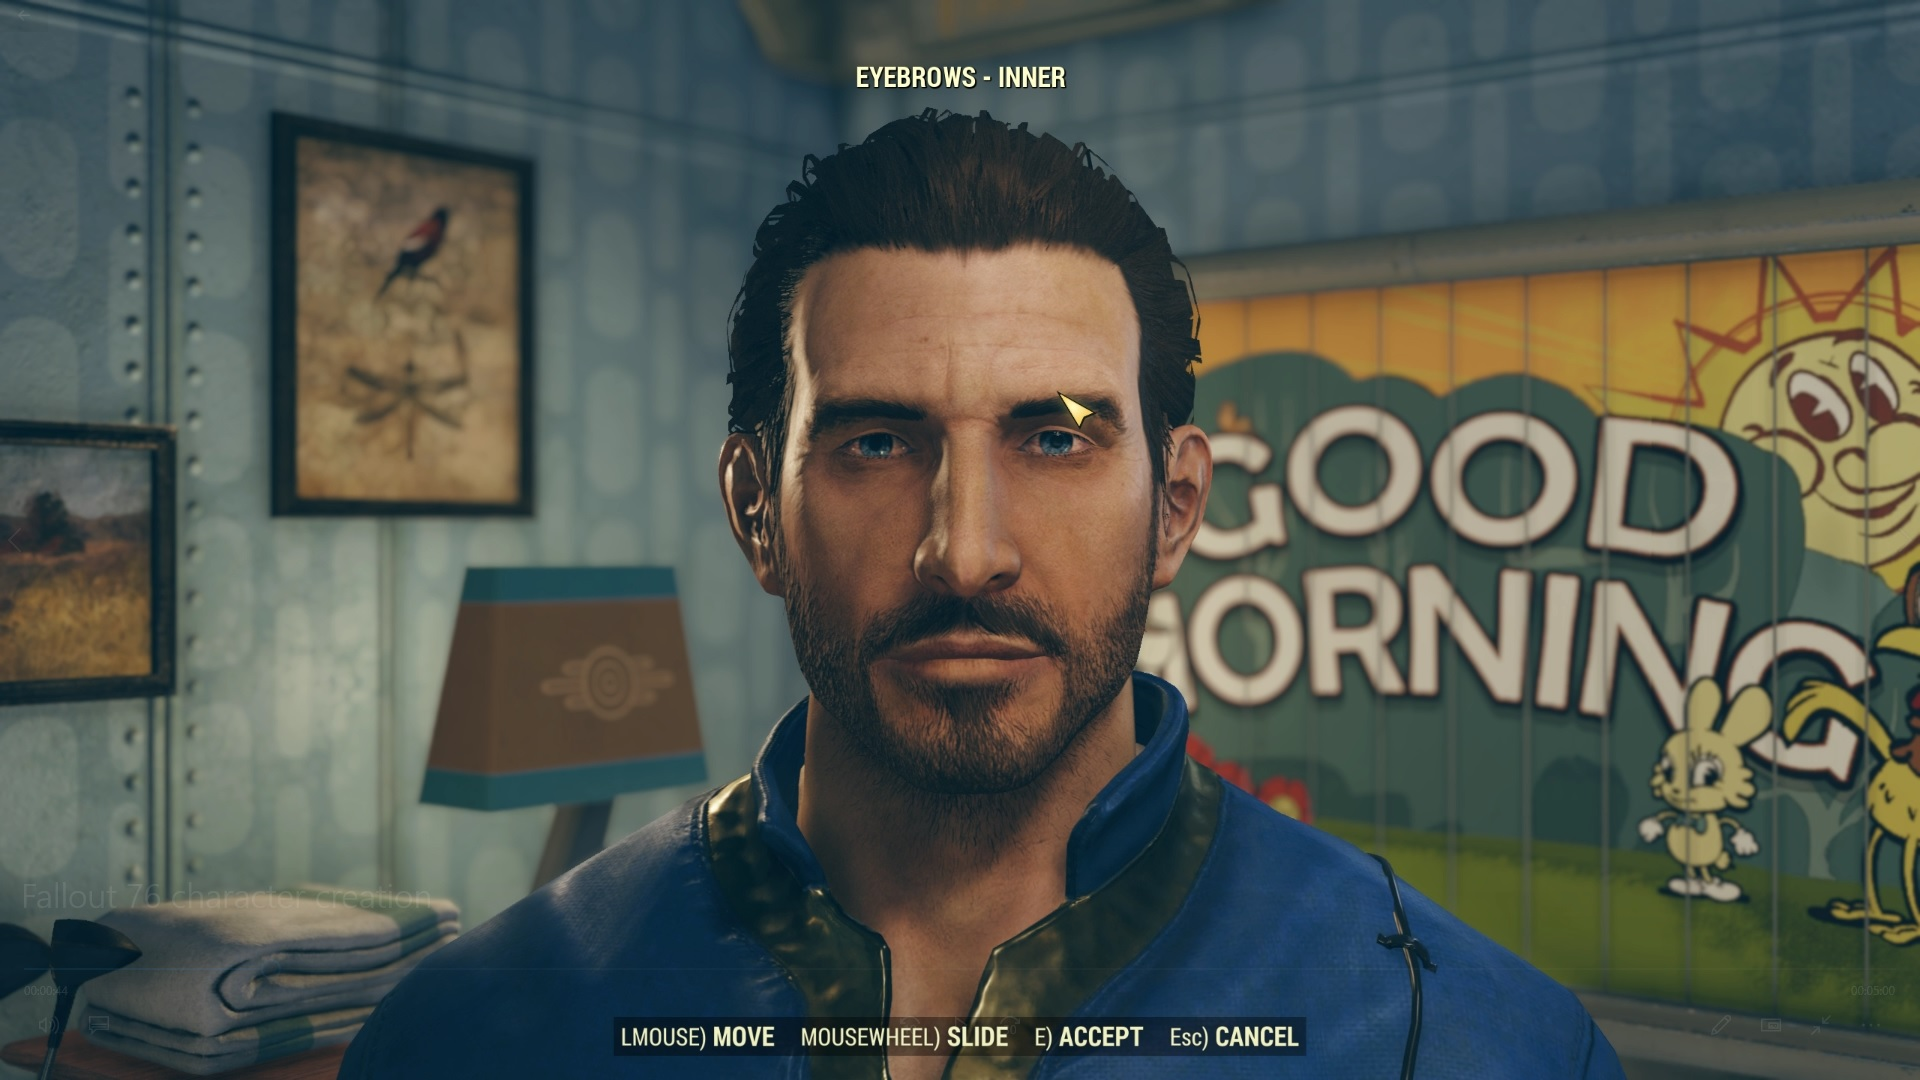 Player is tinkering with the character's inner eyebrows.